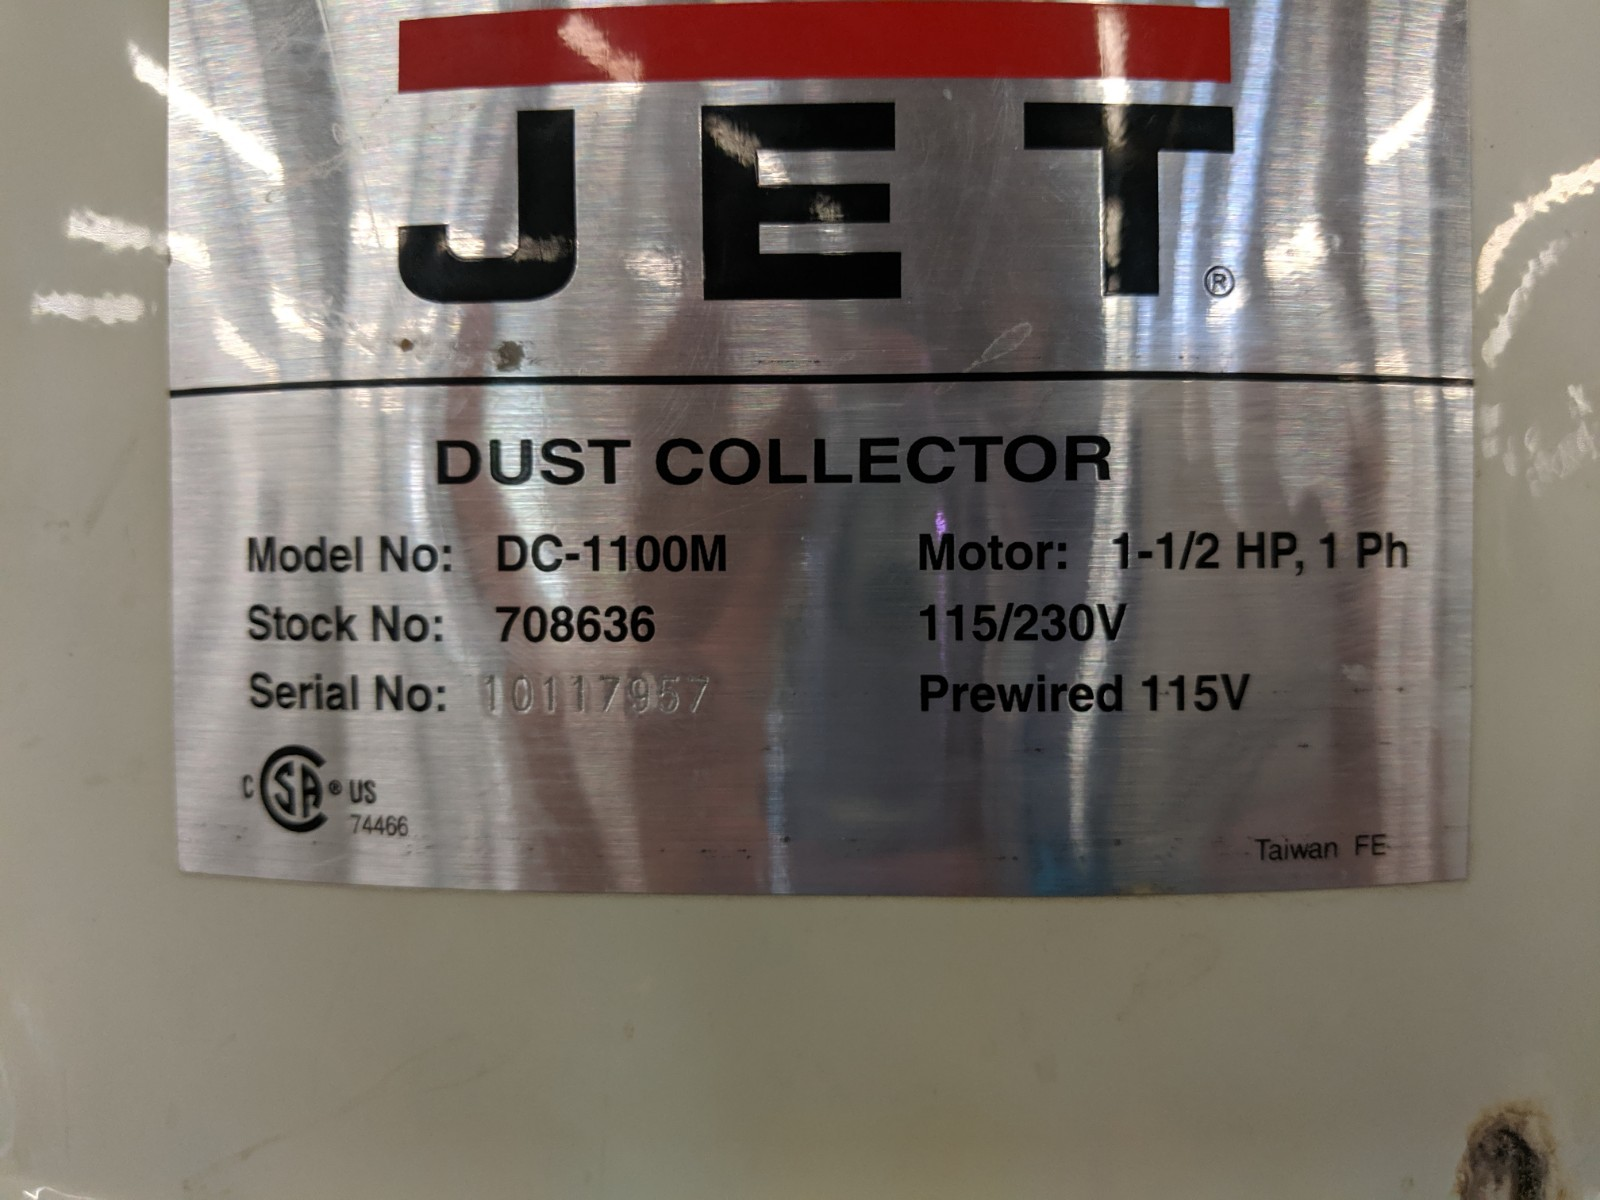 Lot 245 - Jet Dust Collector